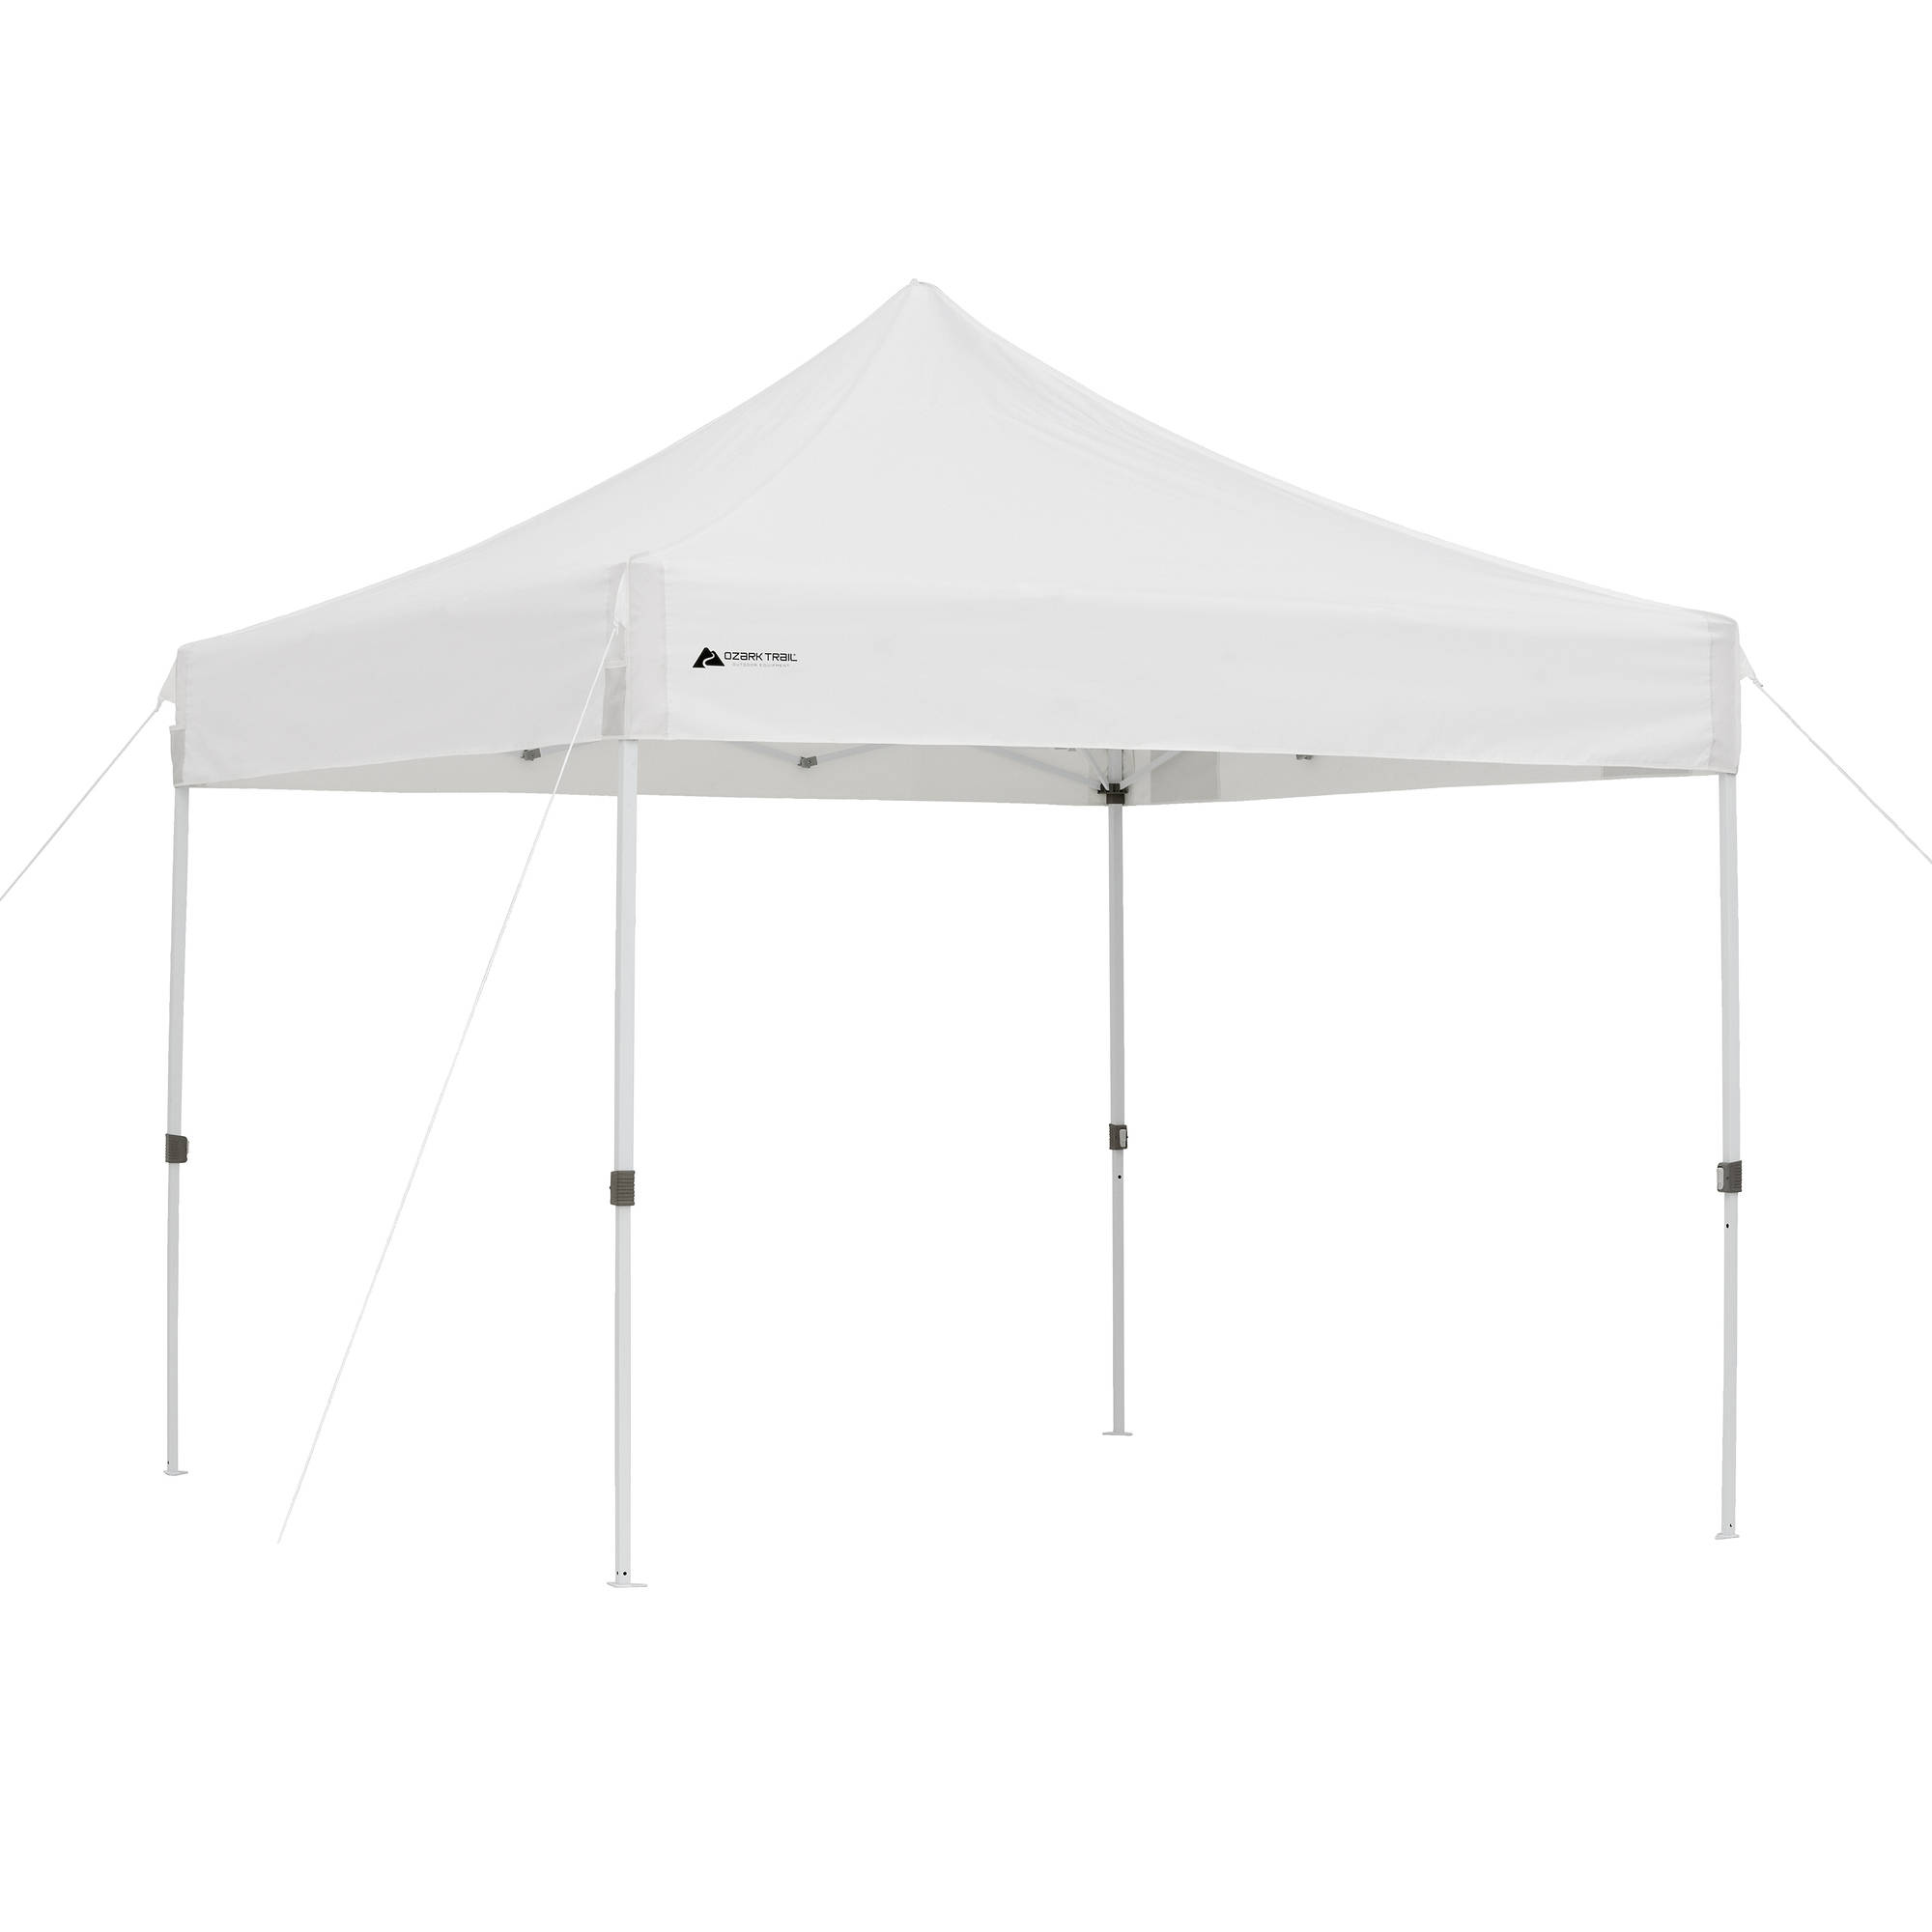 Ozark Trail Instant 10' x 10' 1-Touch Instant Canopy by Campvalley Co., Ltd.